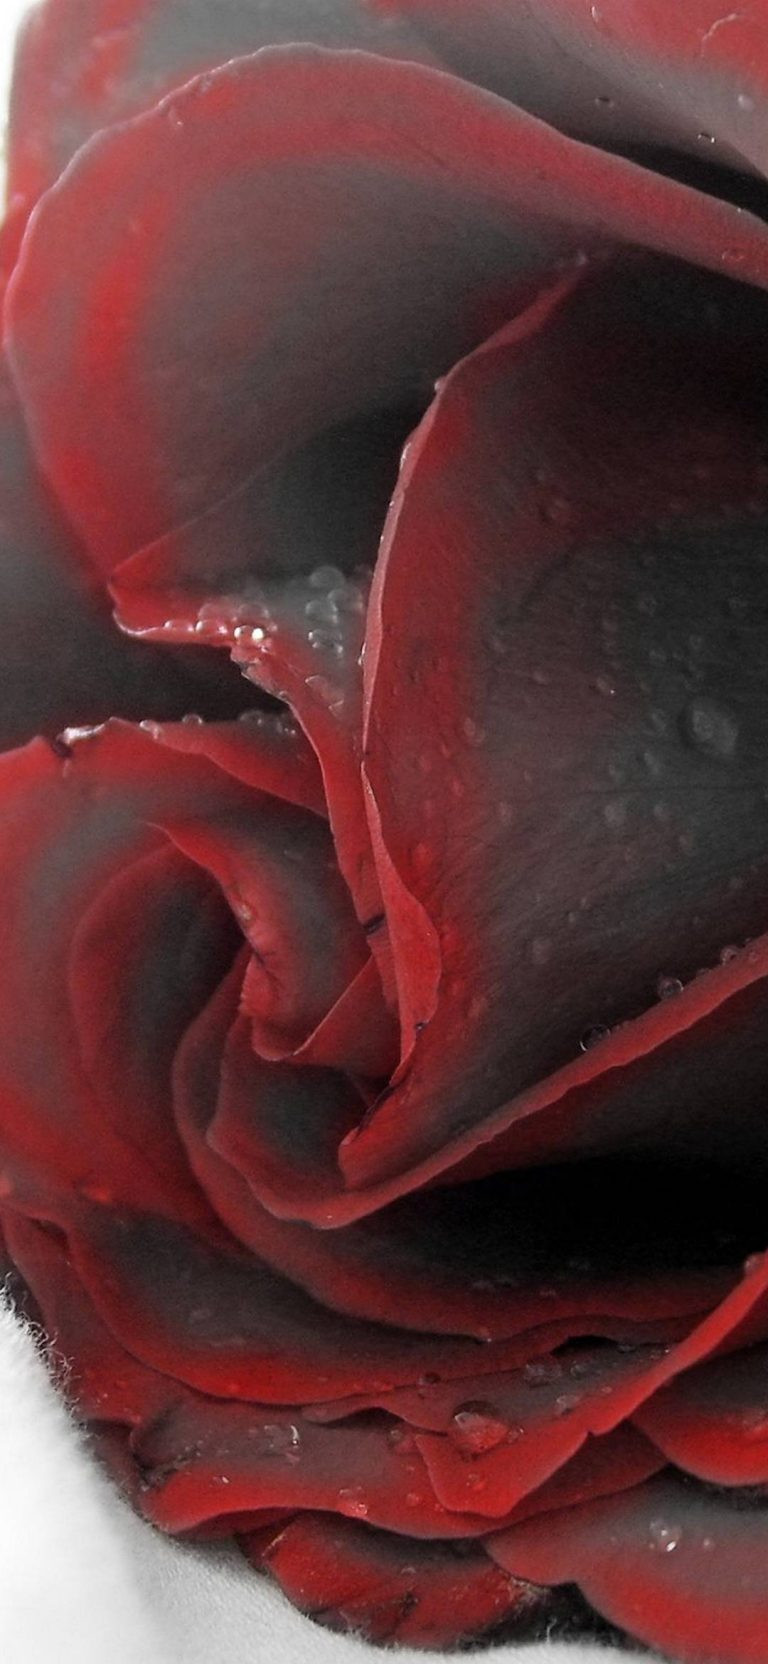 Red Black Rose 1080x2340 768x1664